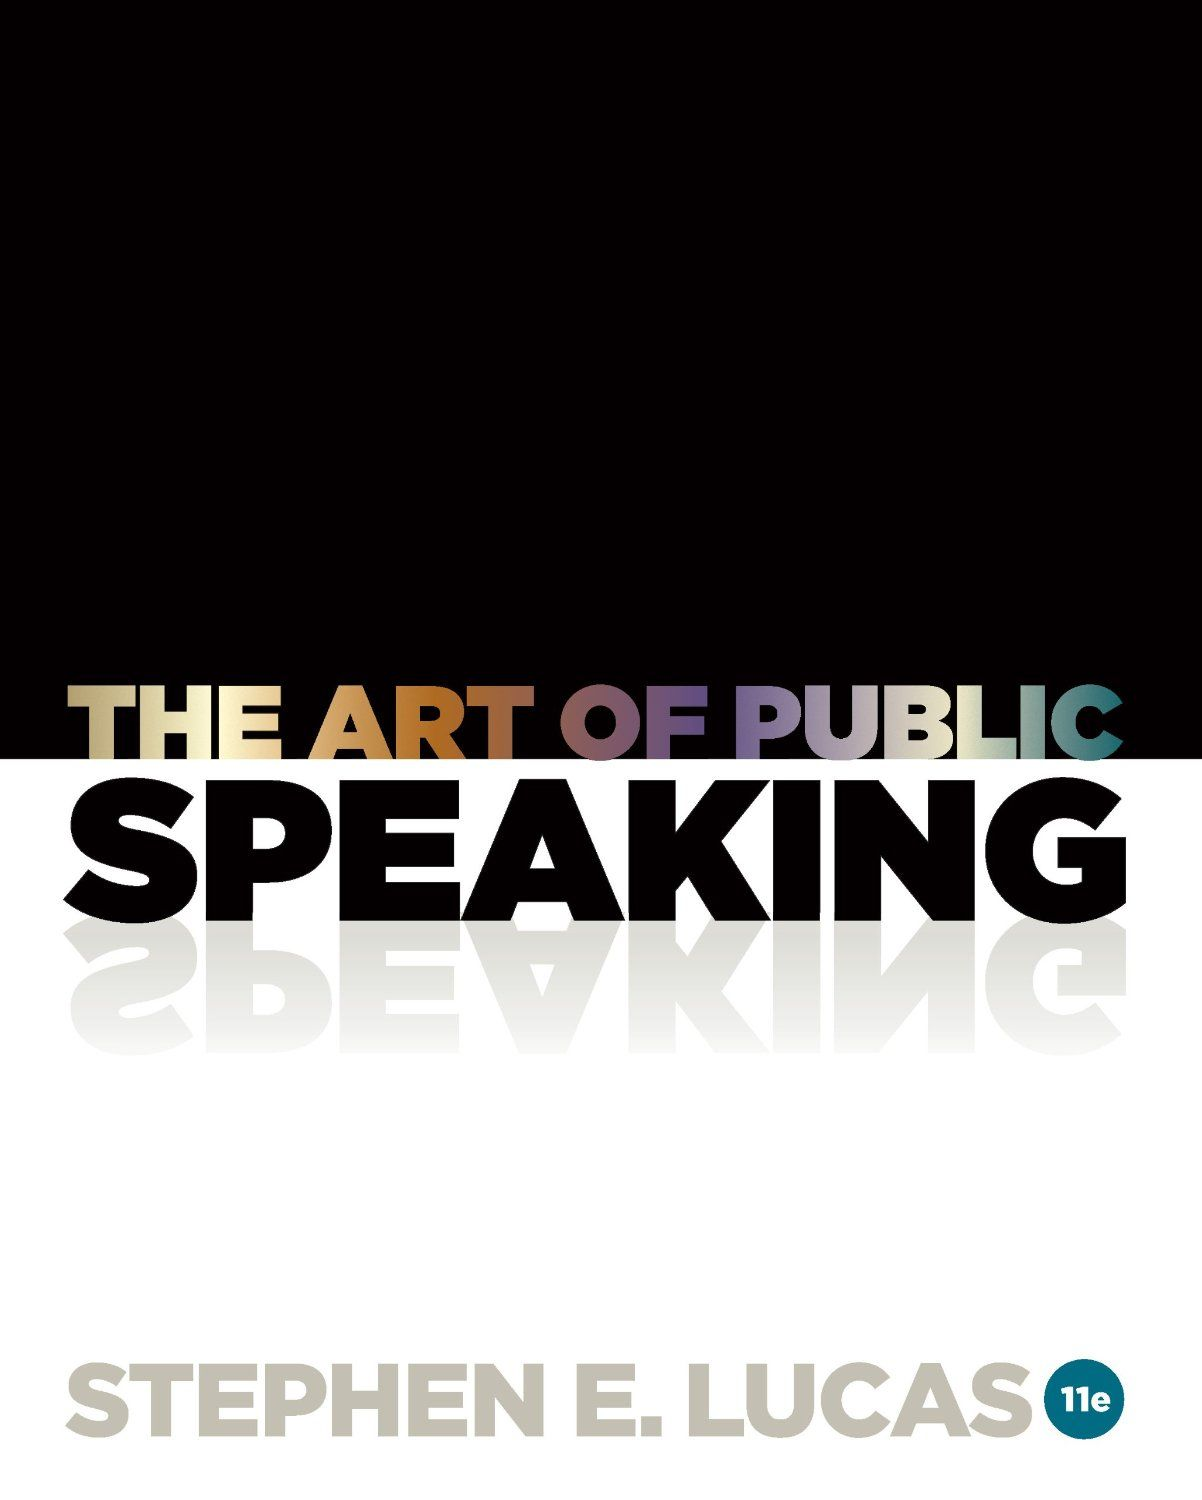 15+ The art of public speaking 13th edition apa citation ideas in 2021